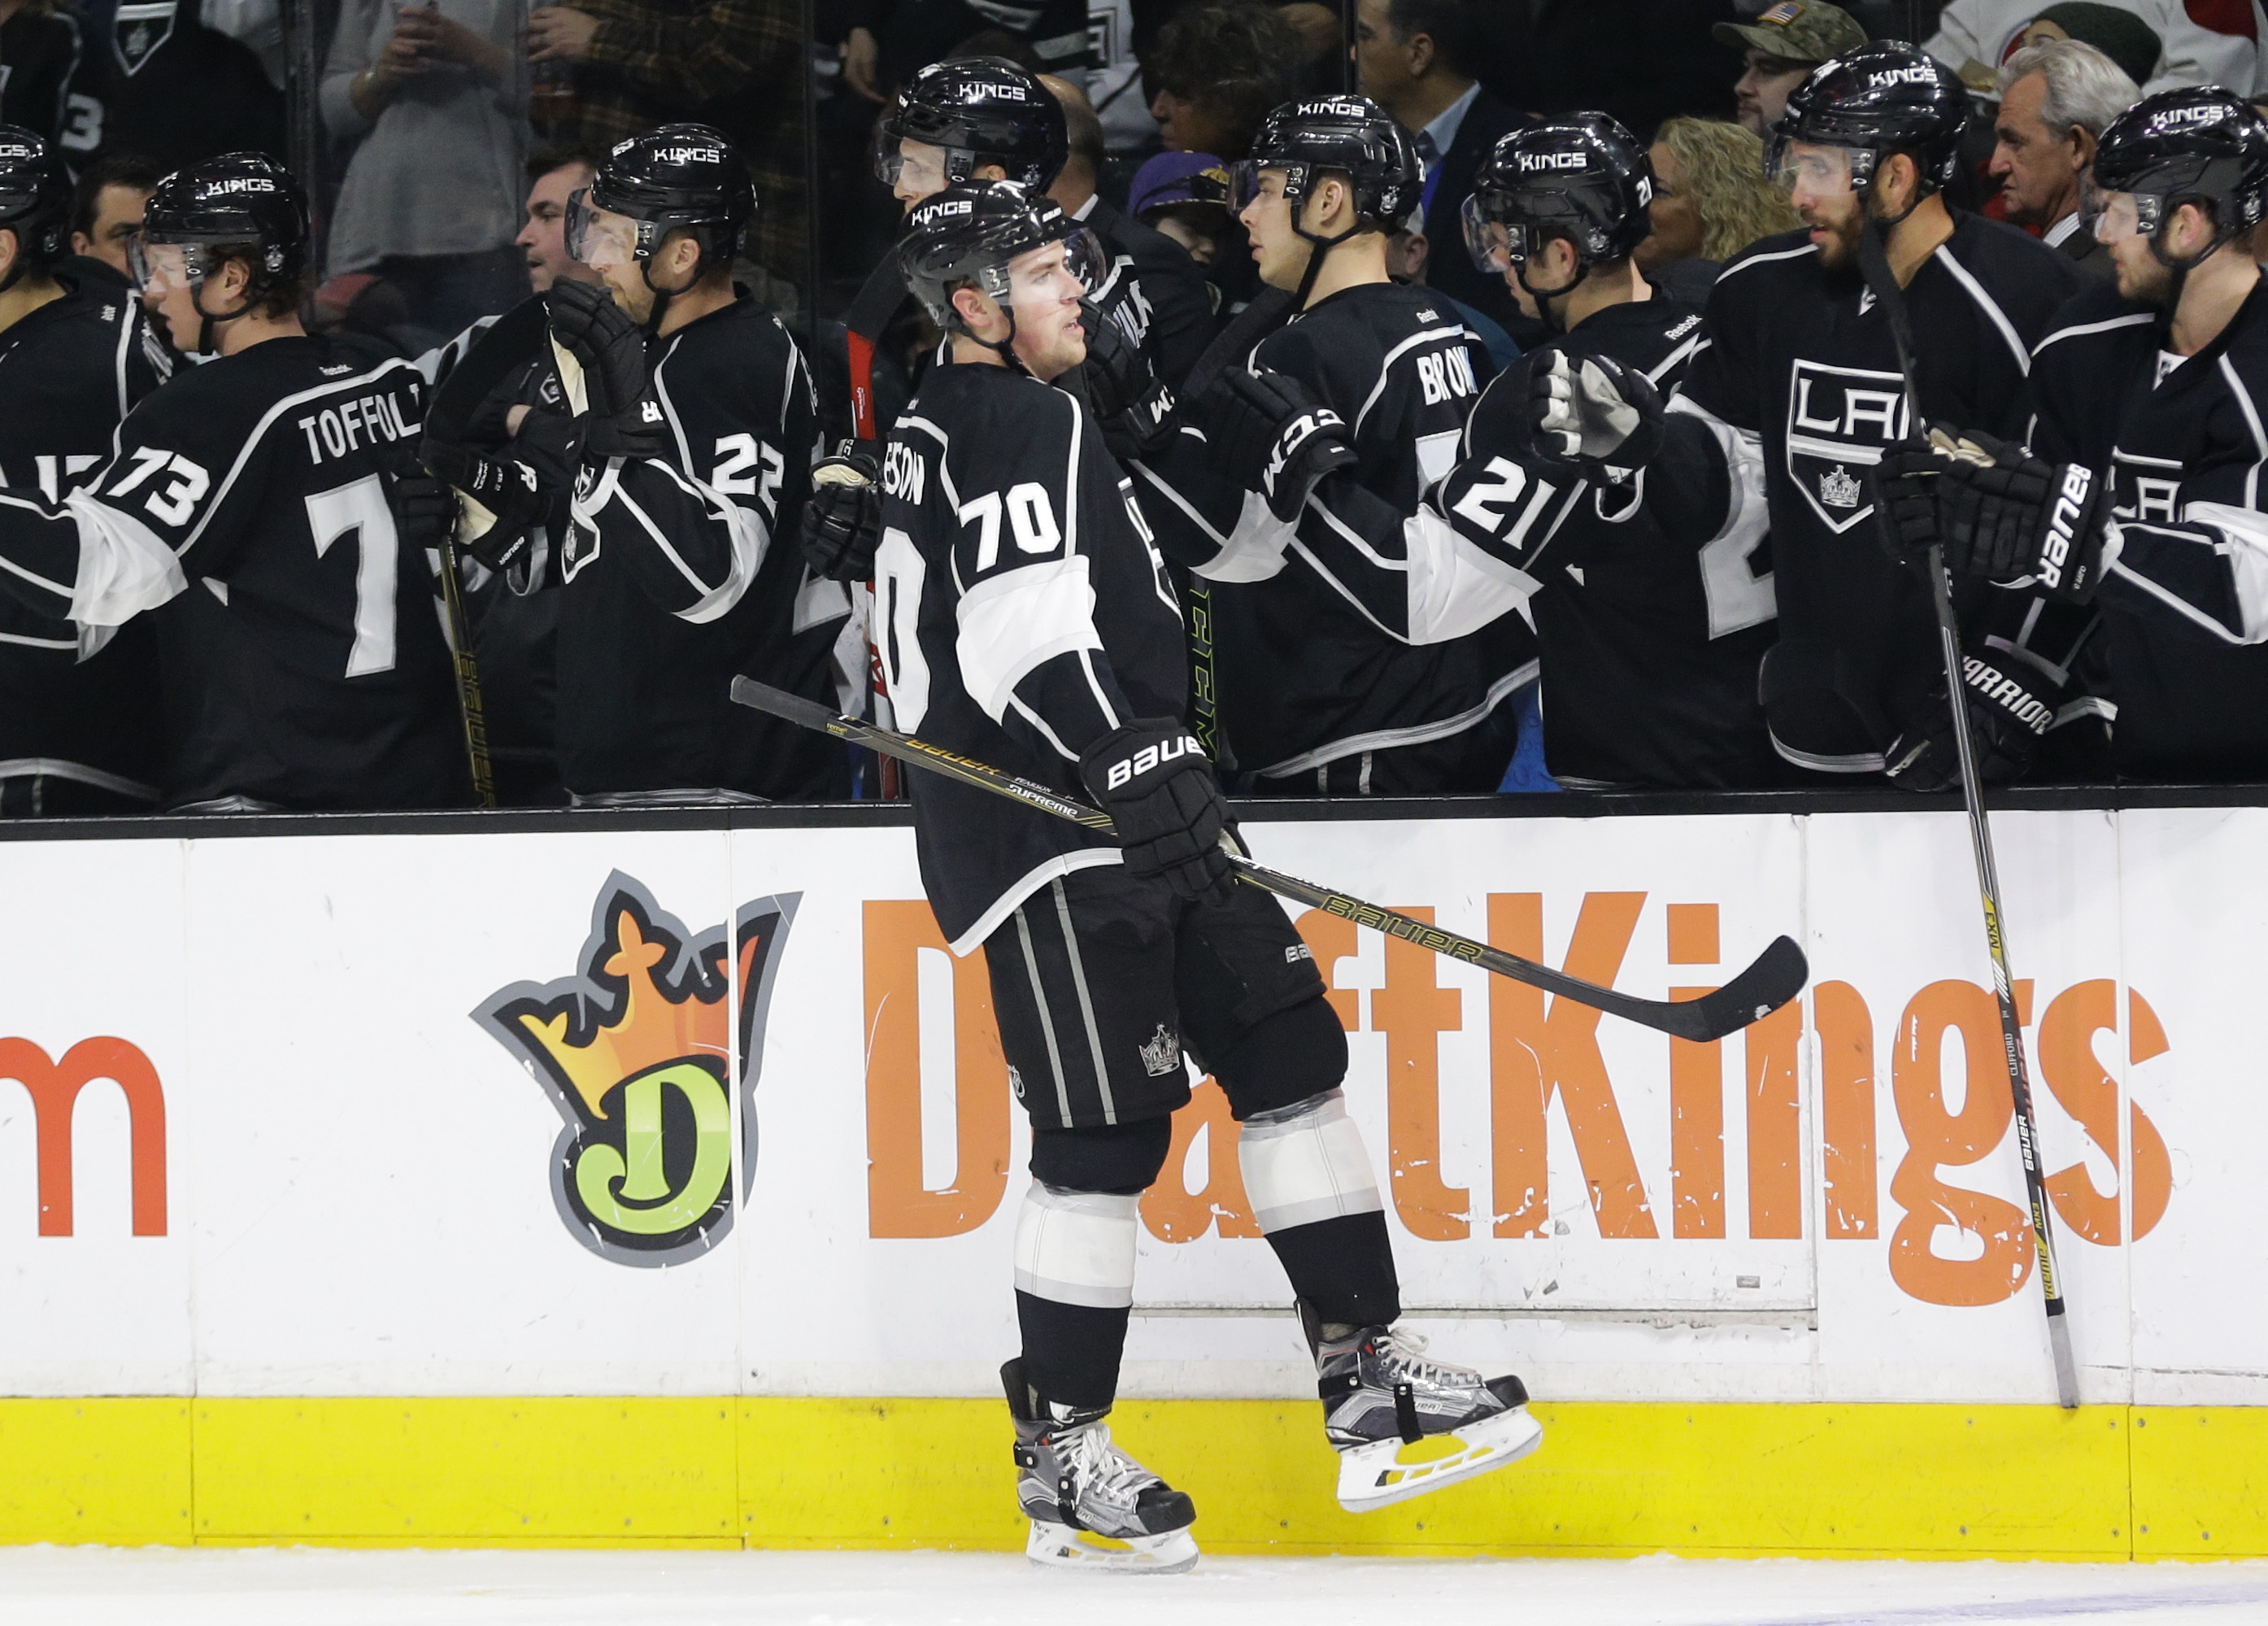 Los Angeles Kings' Tanner Pearson celebrates his goal with teammates during the first period of an NHL hockey game against the Montreal Canadiens, Thursday, March 3, 2016, in Los Angeles. (AP Photo/Jae C. Hong)